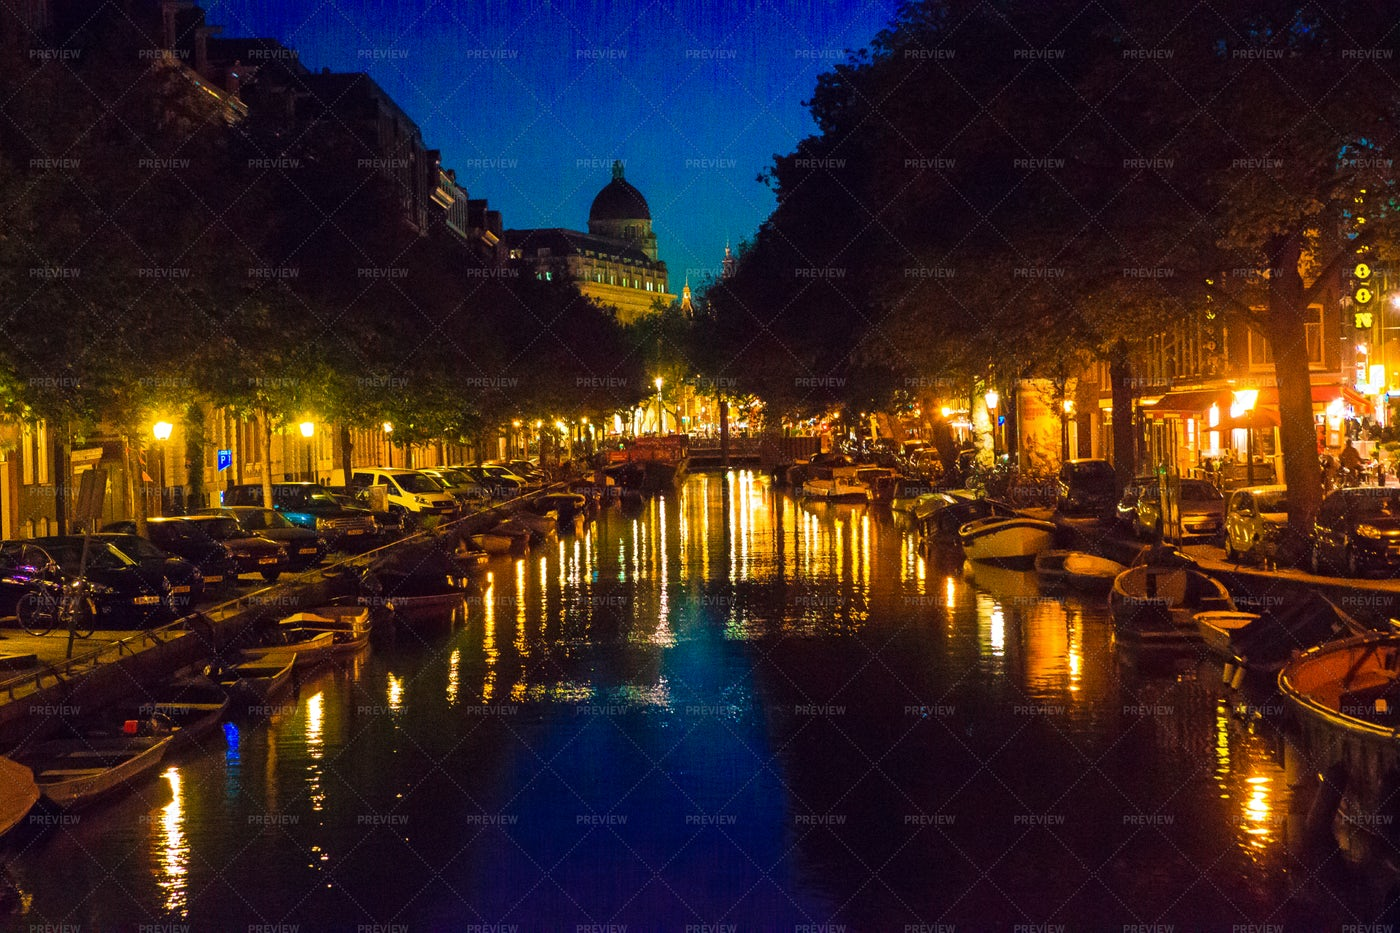 Amsterdam Canals At Night: Stock Photos